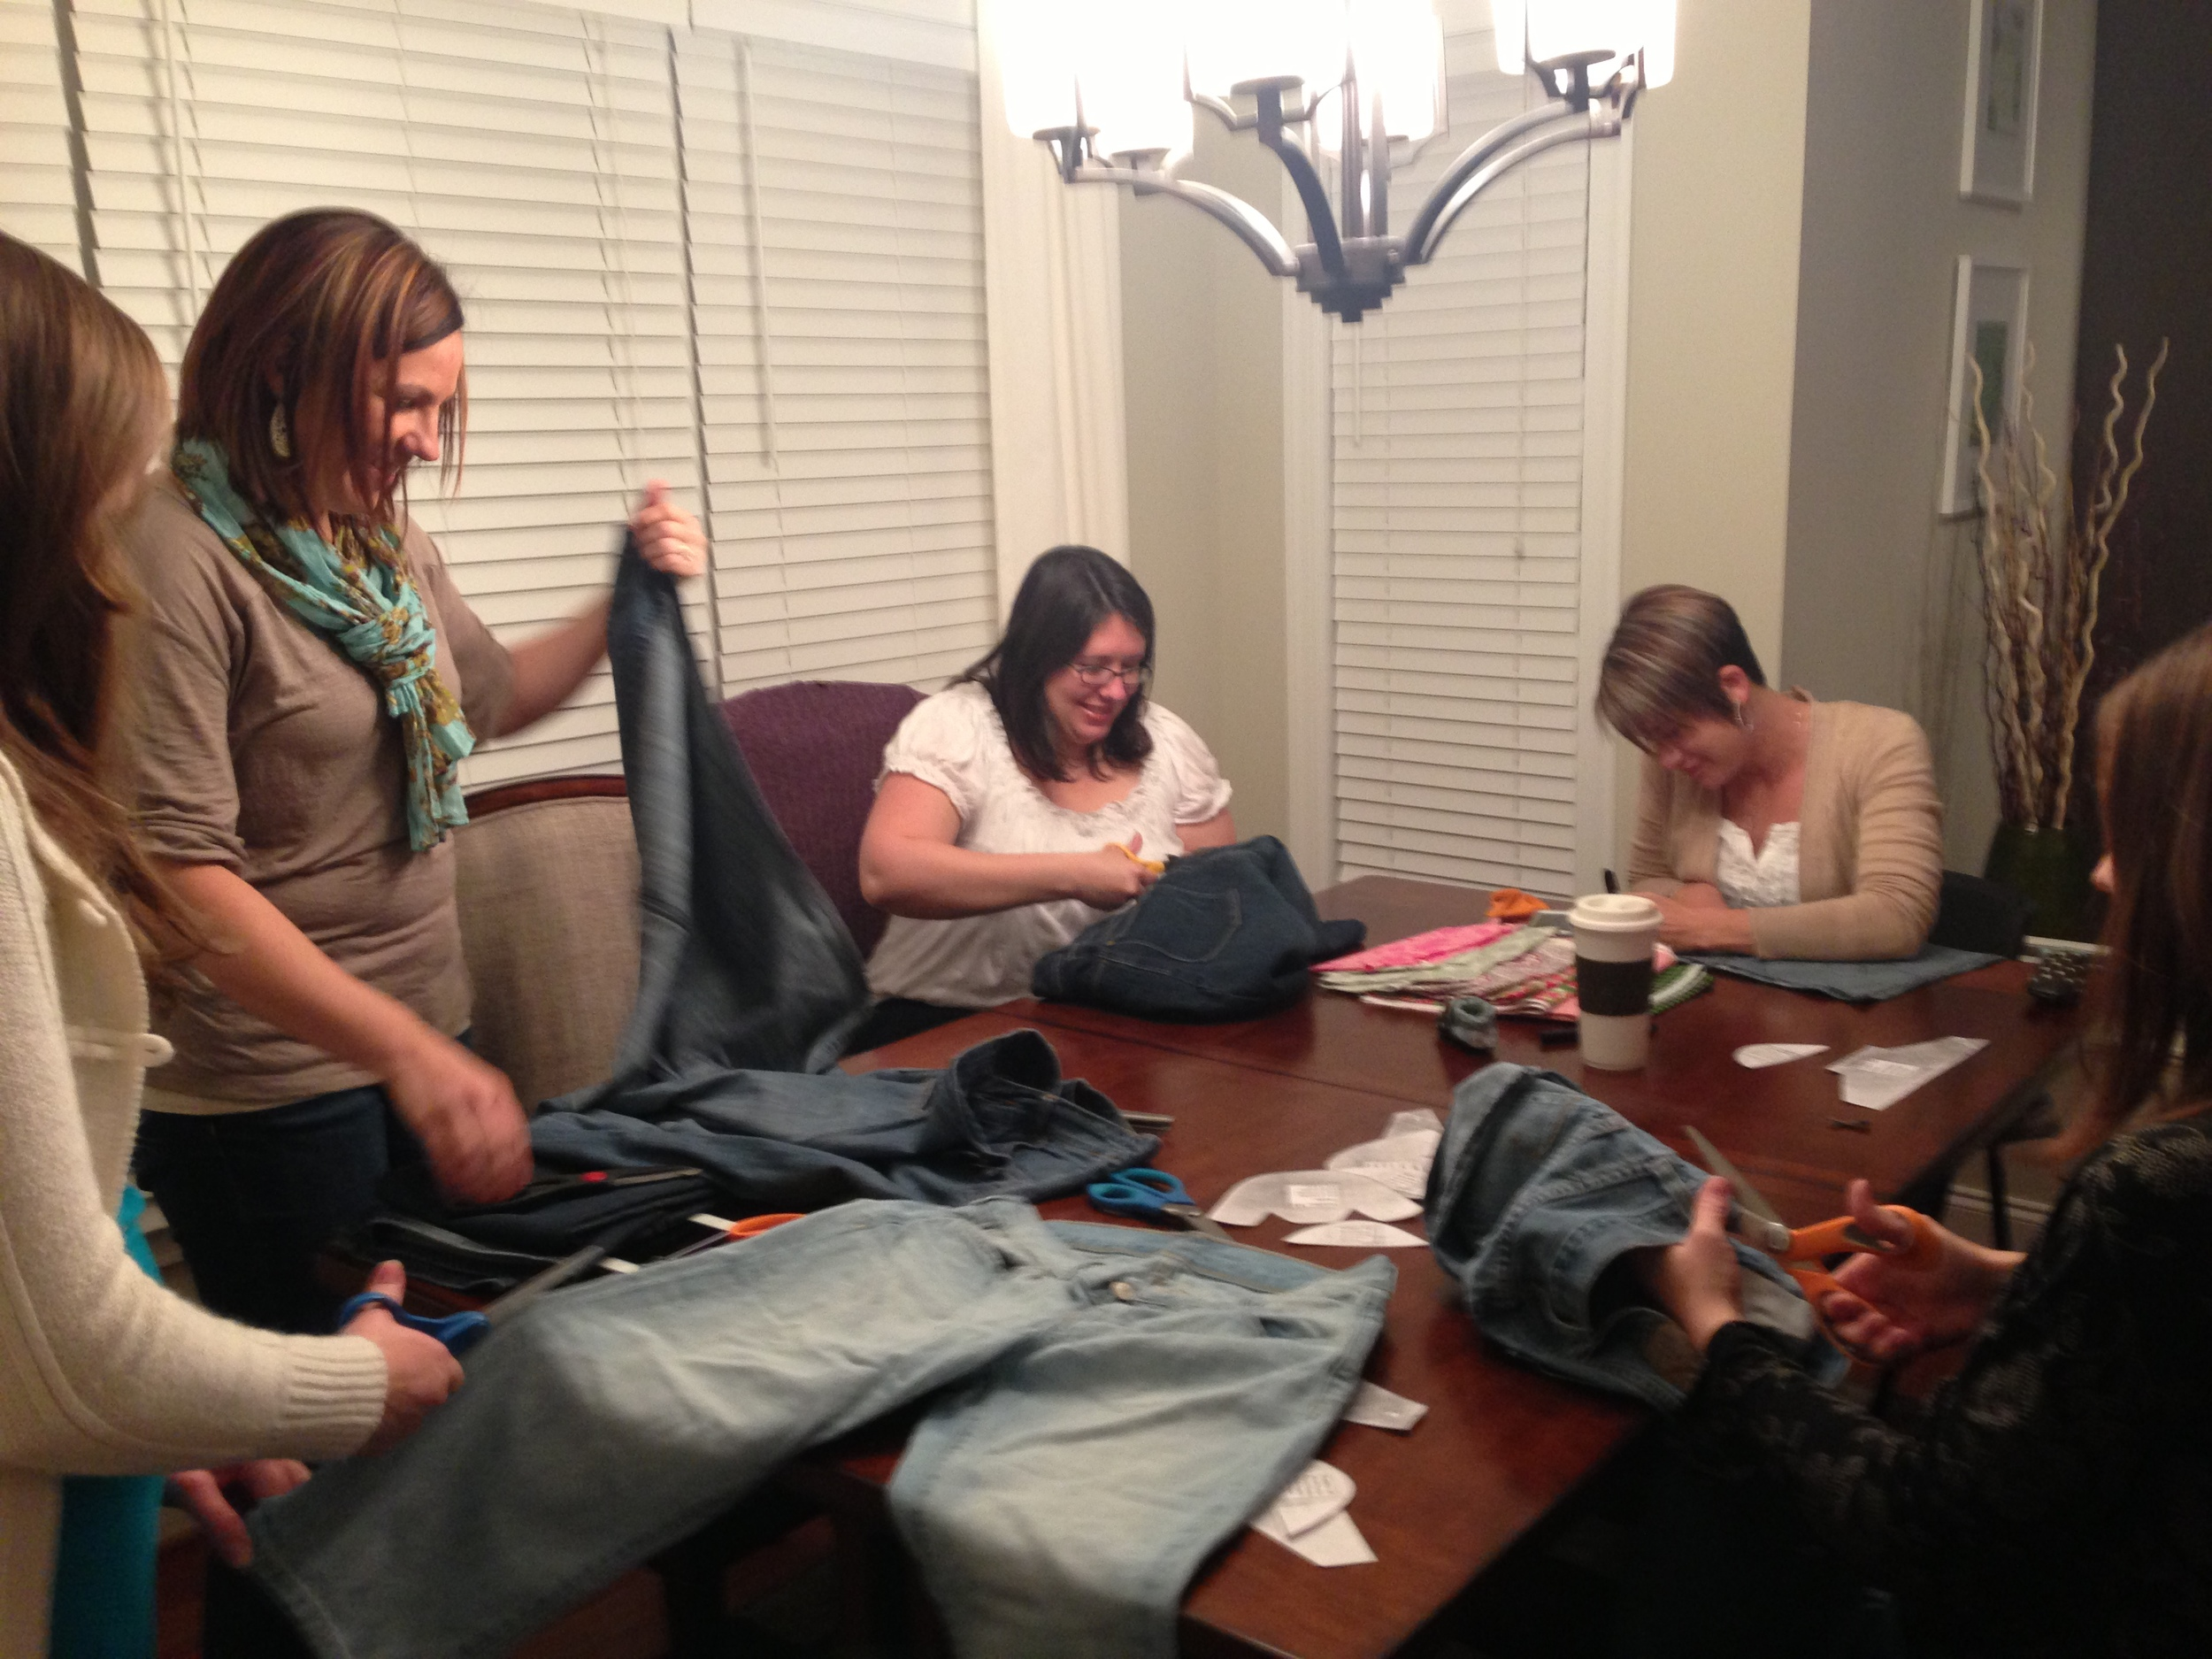 Shoe cutting party